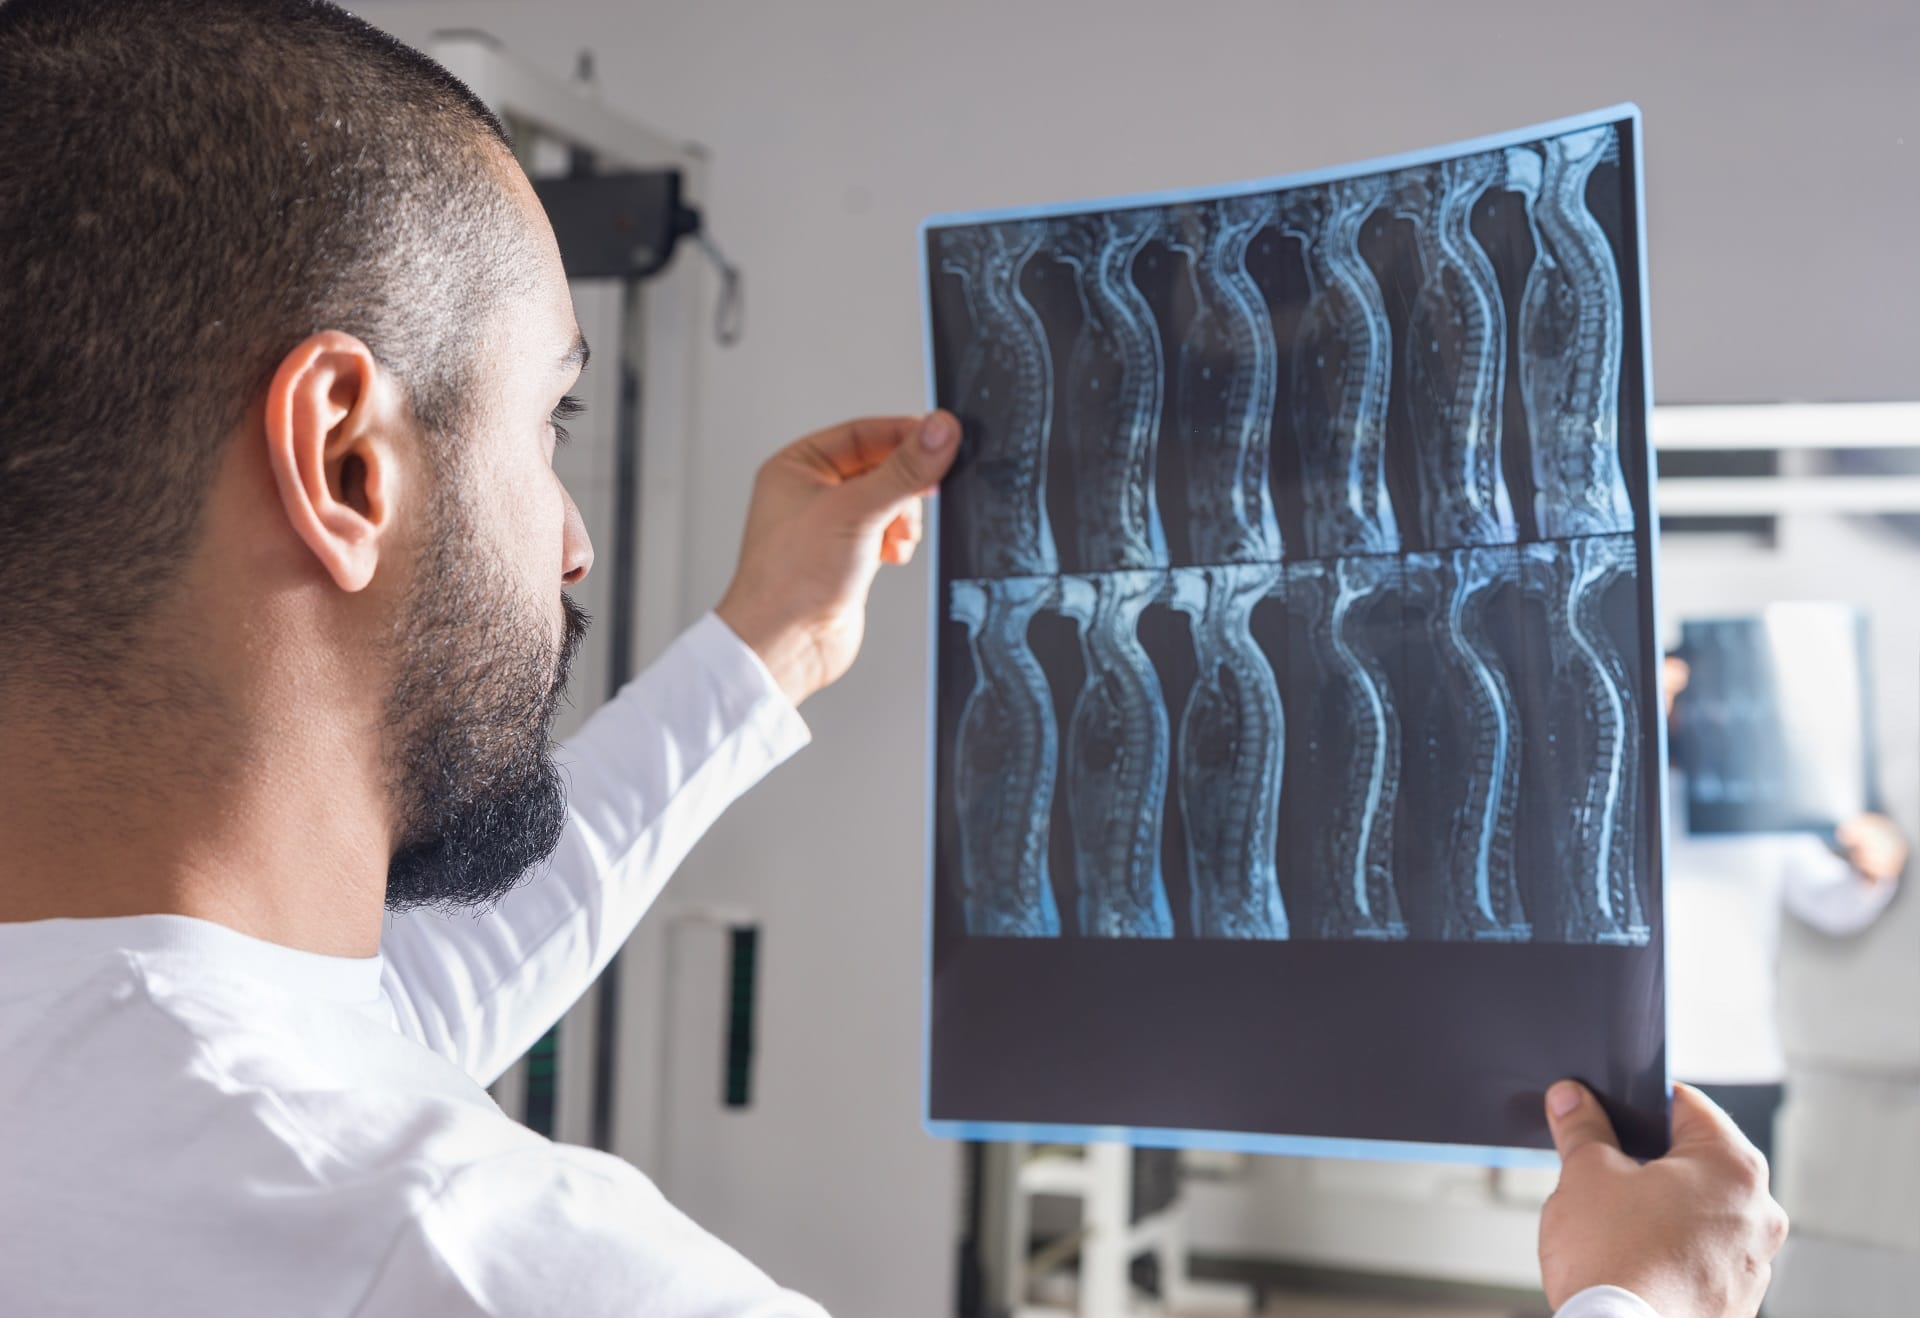 Doctor analyzing X-ray image in consulting room